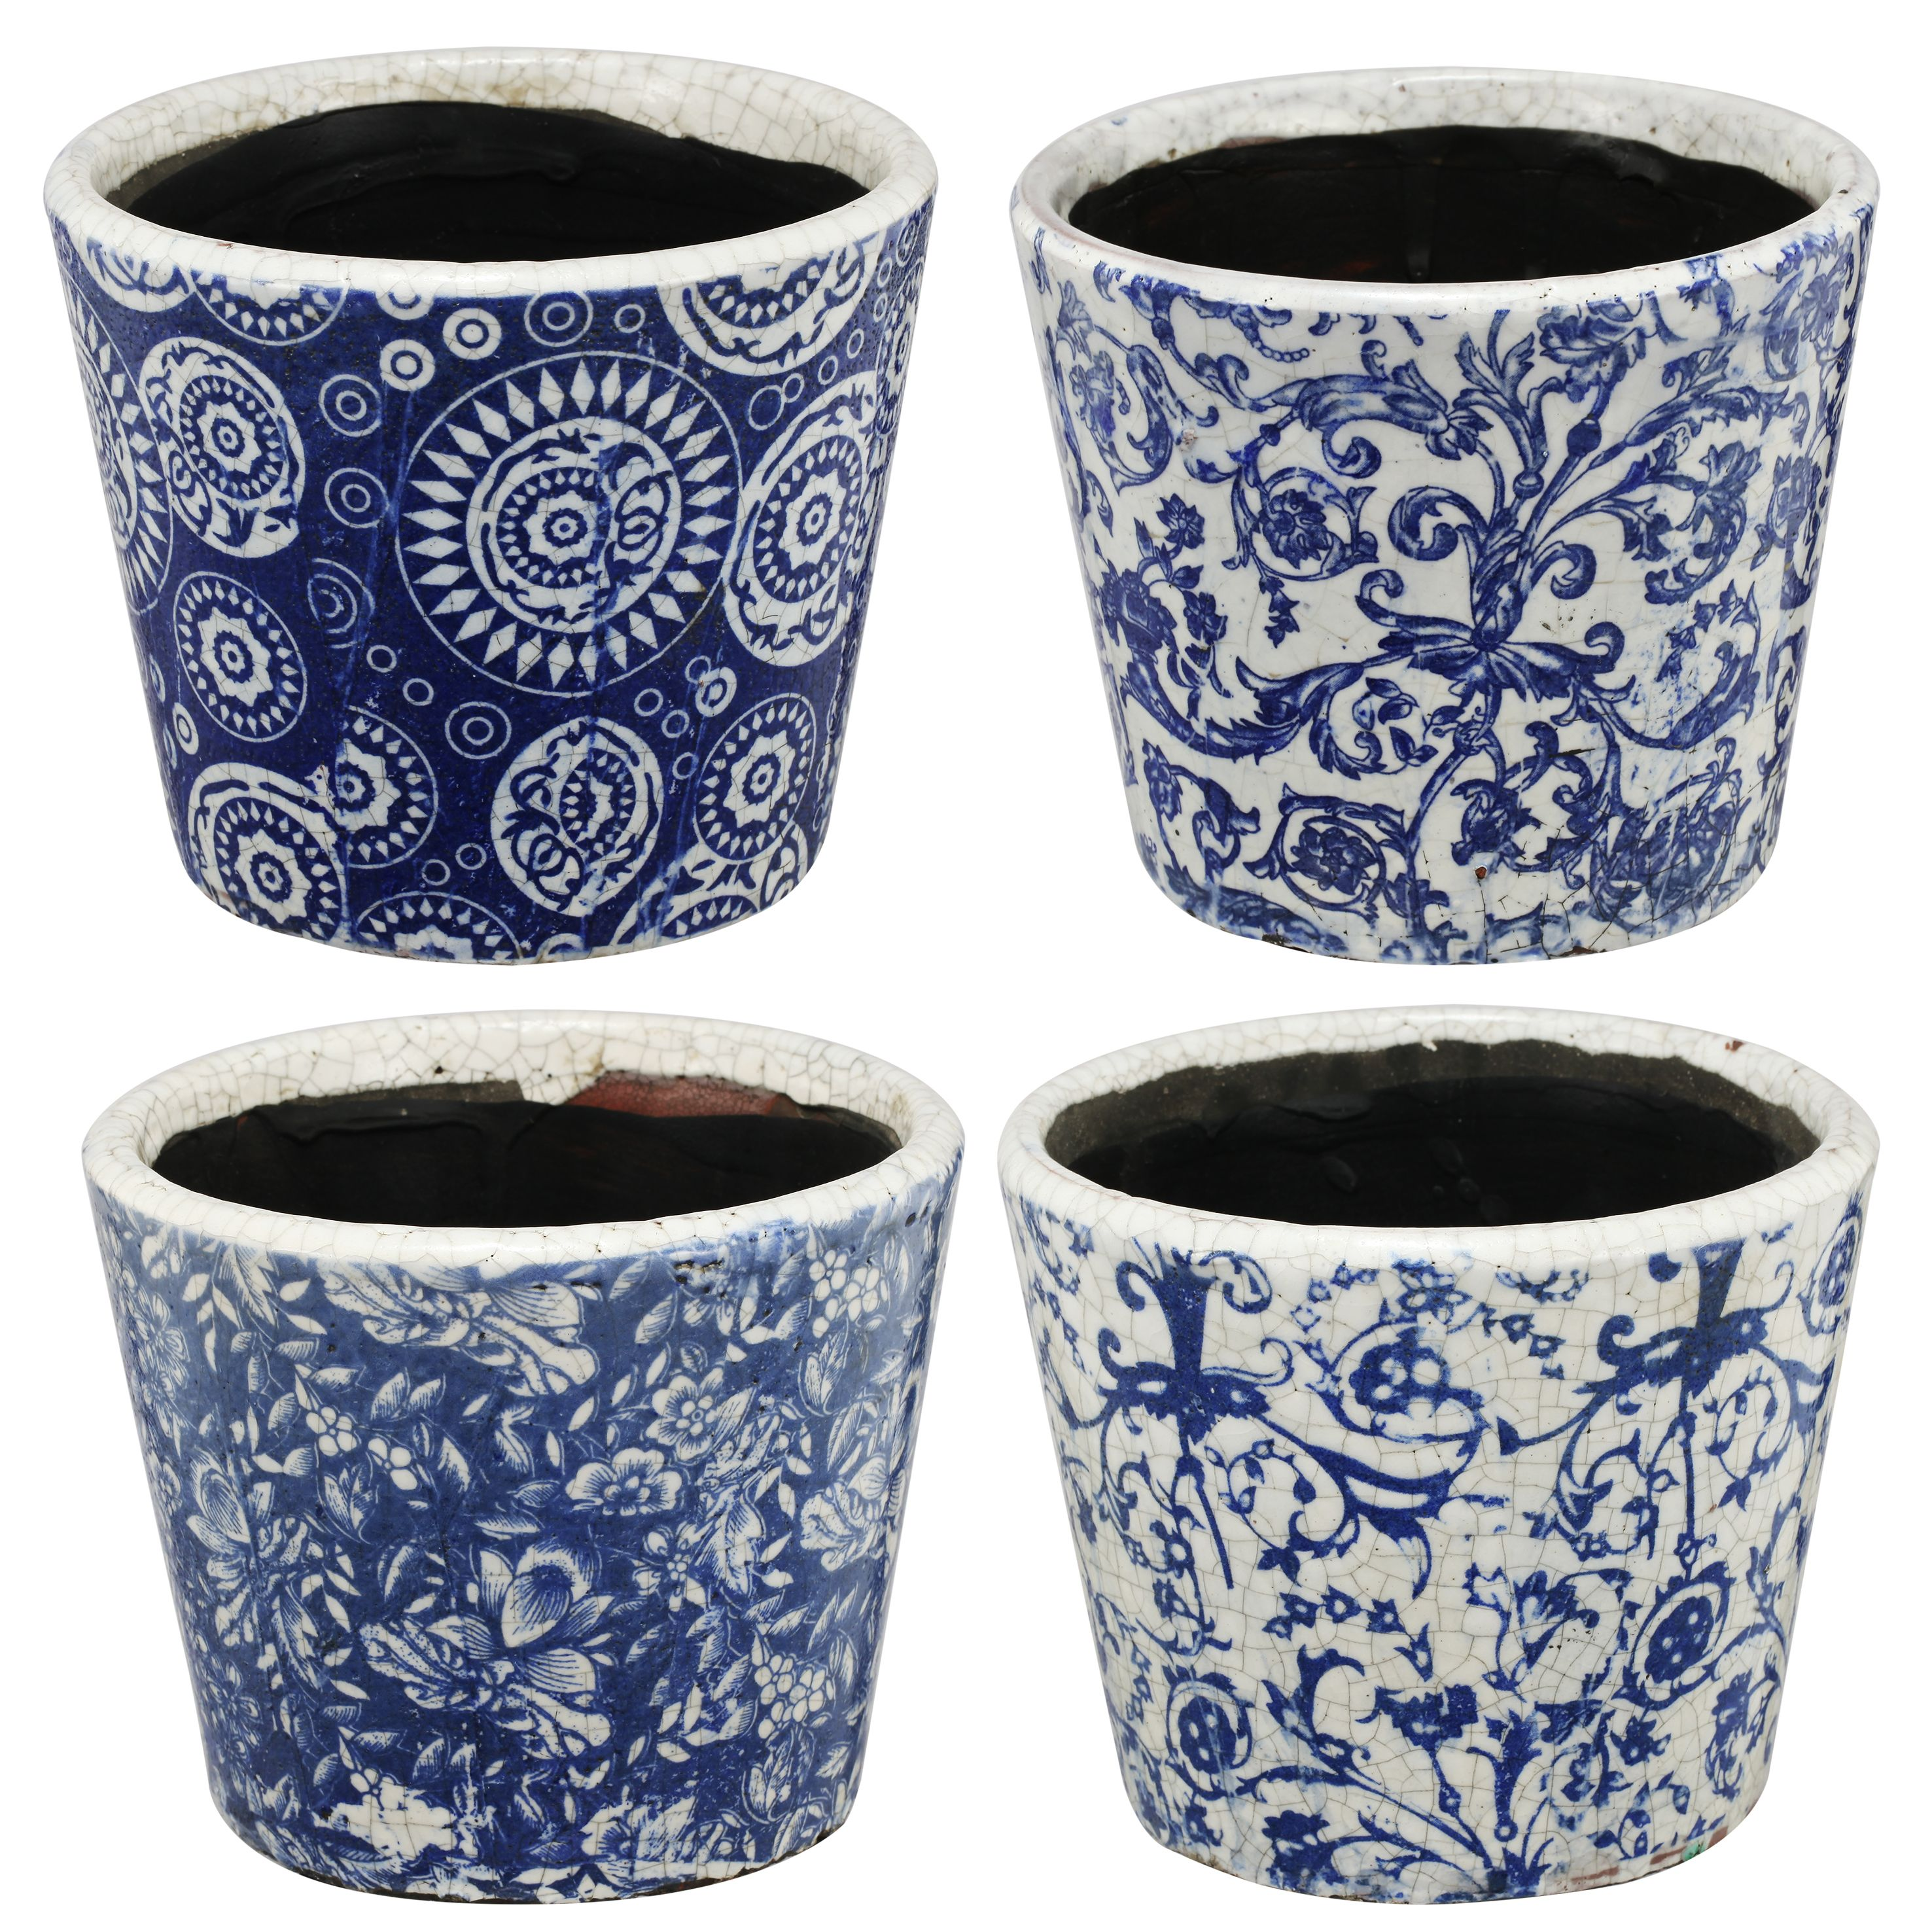 A&B Home Anthony Venetucci Set of 4 Small Planters by A&B Home